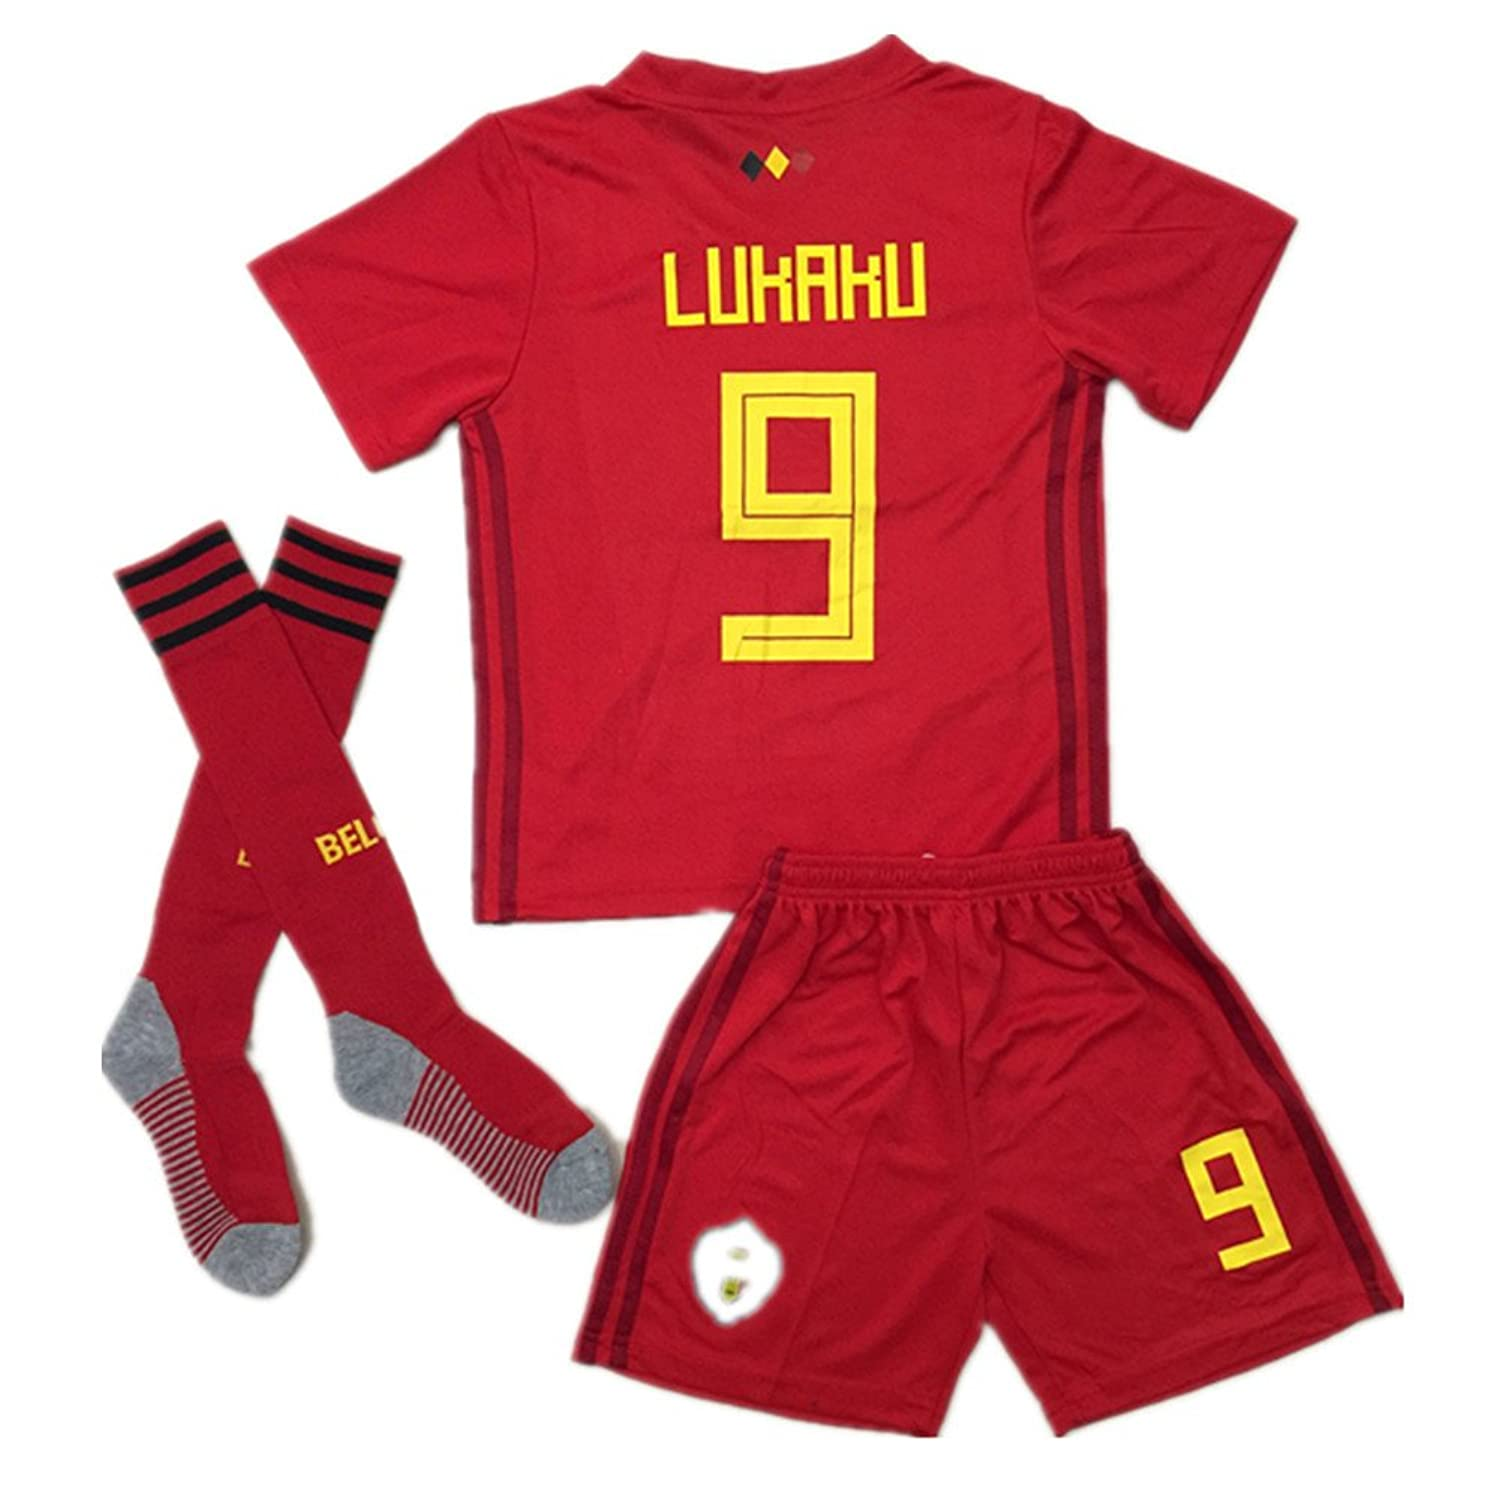 Discount BelgiumJS 9 Lukaku 2018 Russia World Cup Belgium Home Soccer Jersey Youth/Kids Jersey & Shorts & Socks